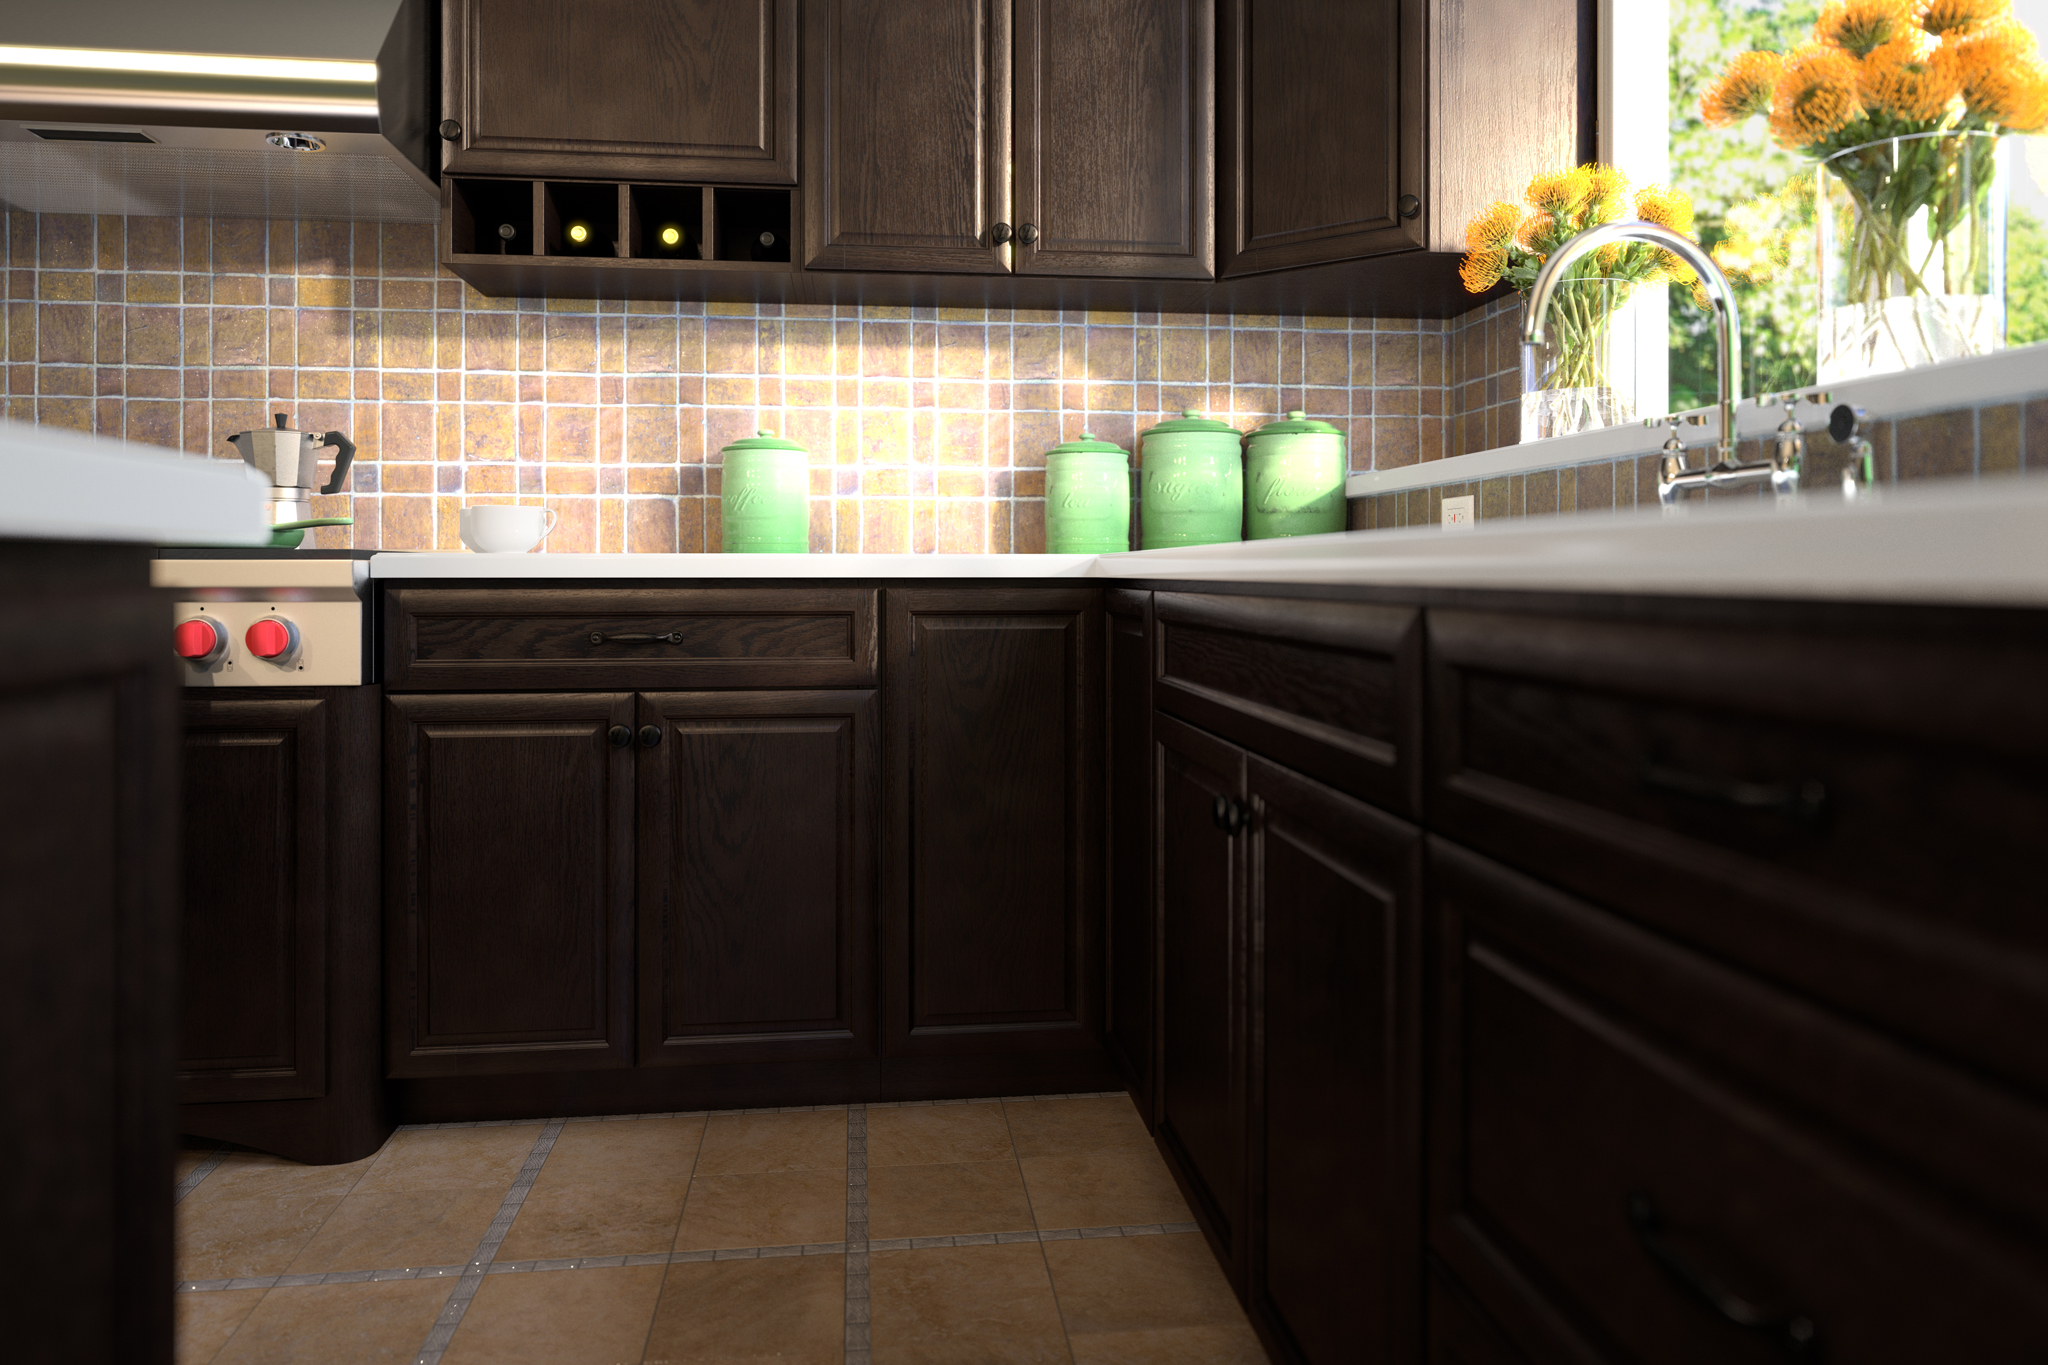 3d rendering of dark kitchen cabinetry and cookie jars